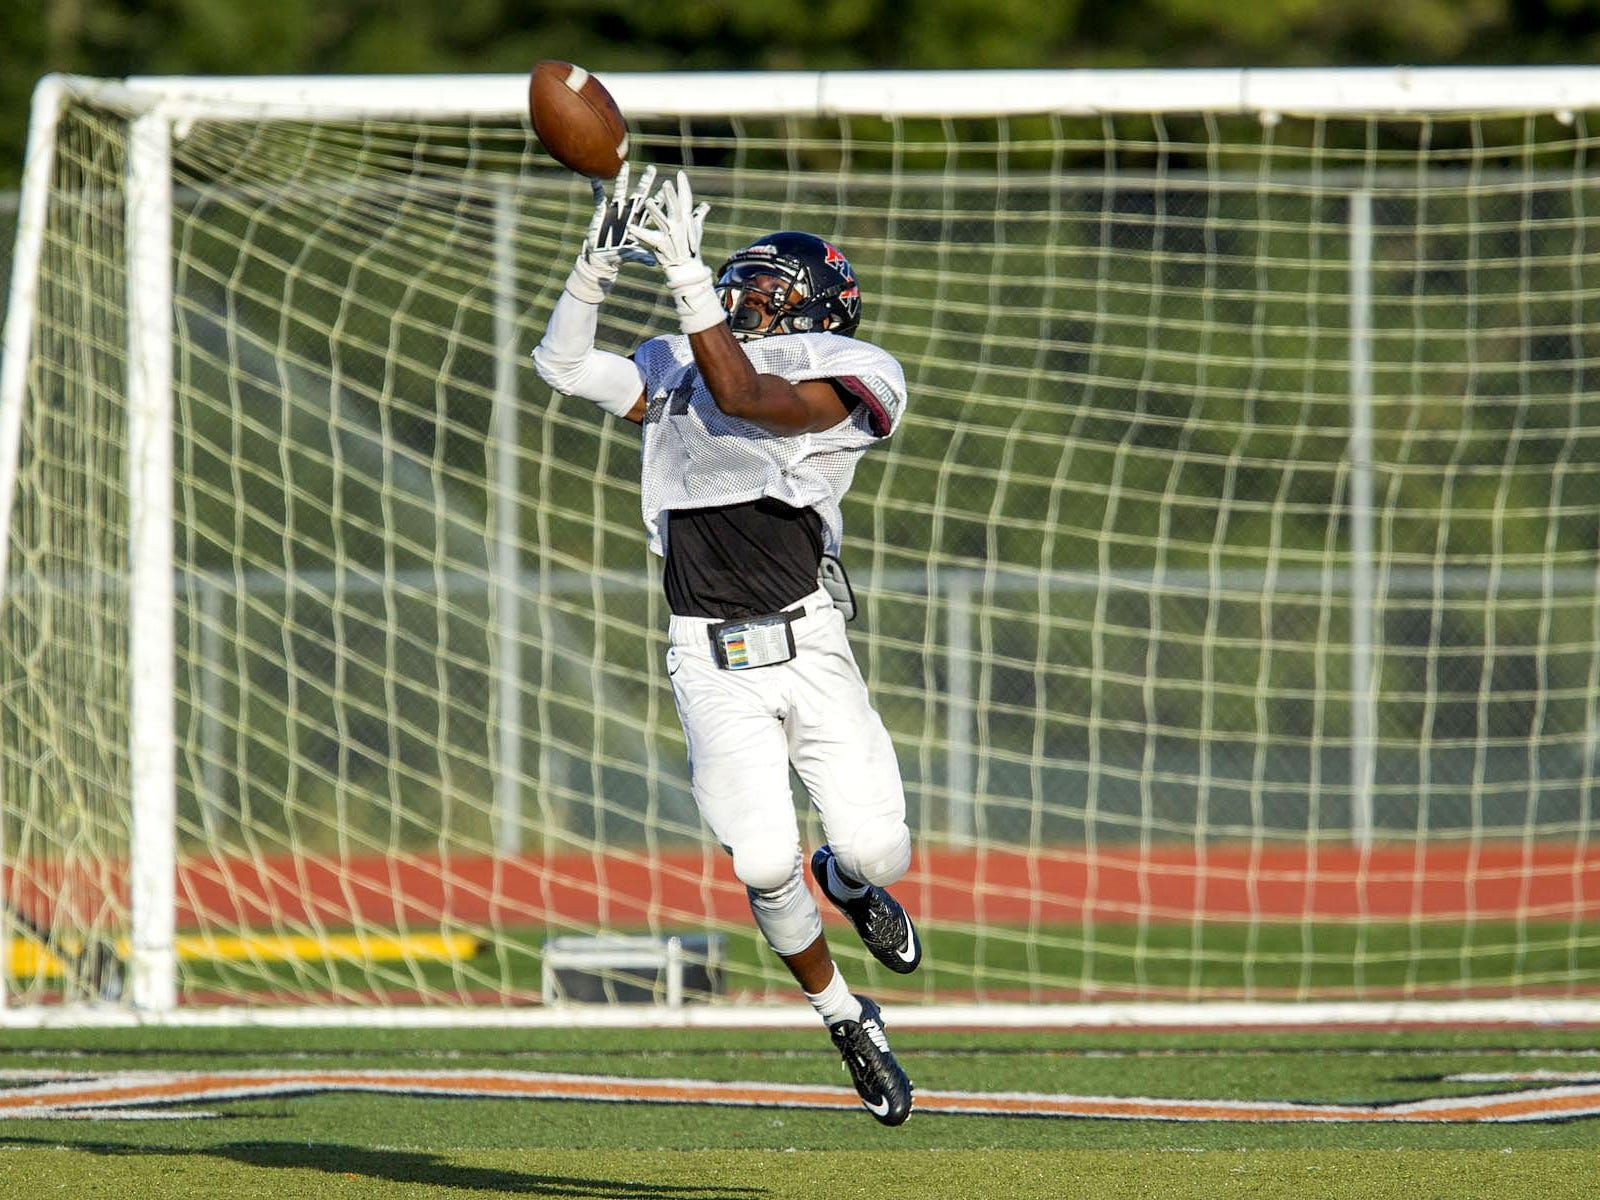 Middletown North's Dwight Wilkerson catches a touchdown pass during a scrimmage against Allentown on Aug. 28.